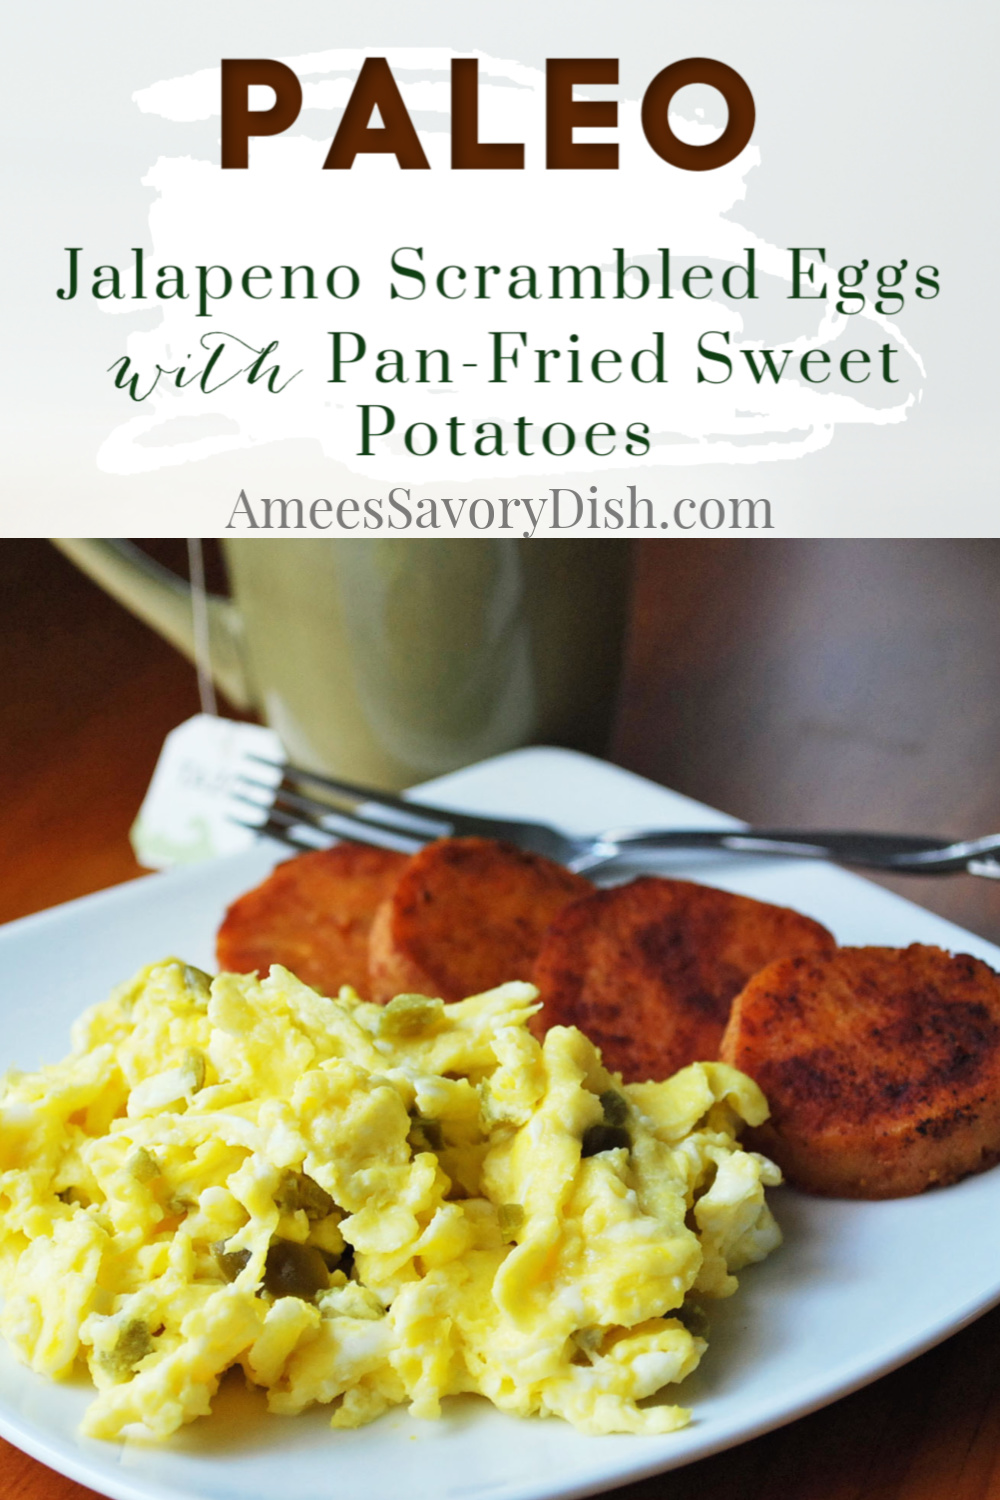 Jalapeno scrambled eggs have a nice kick of spice to jump-start your day! Serve with pan-fried sweet potatoes sprinkled with cinnamon for healthy carbohydrates to keep you fueled for hours! via @Ameessavorydish